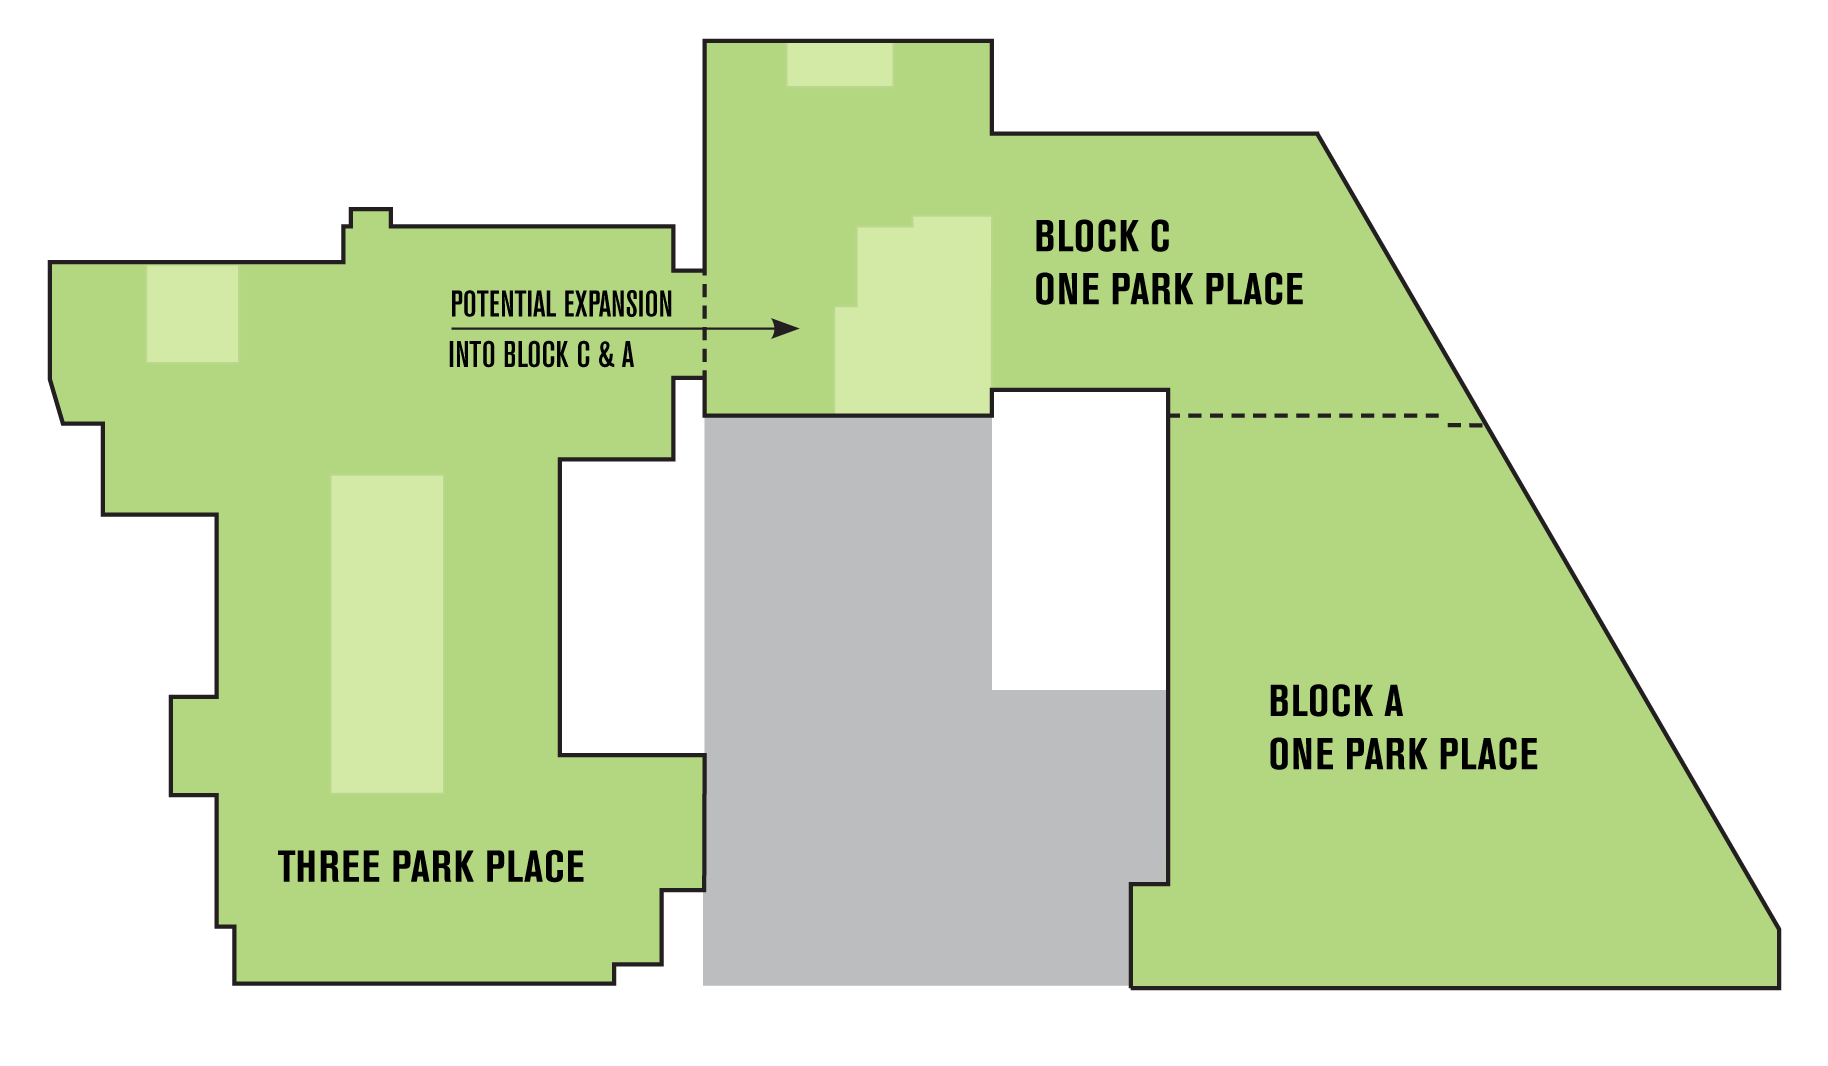 Potential Expansion Into Block C & A